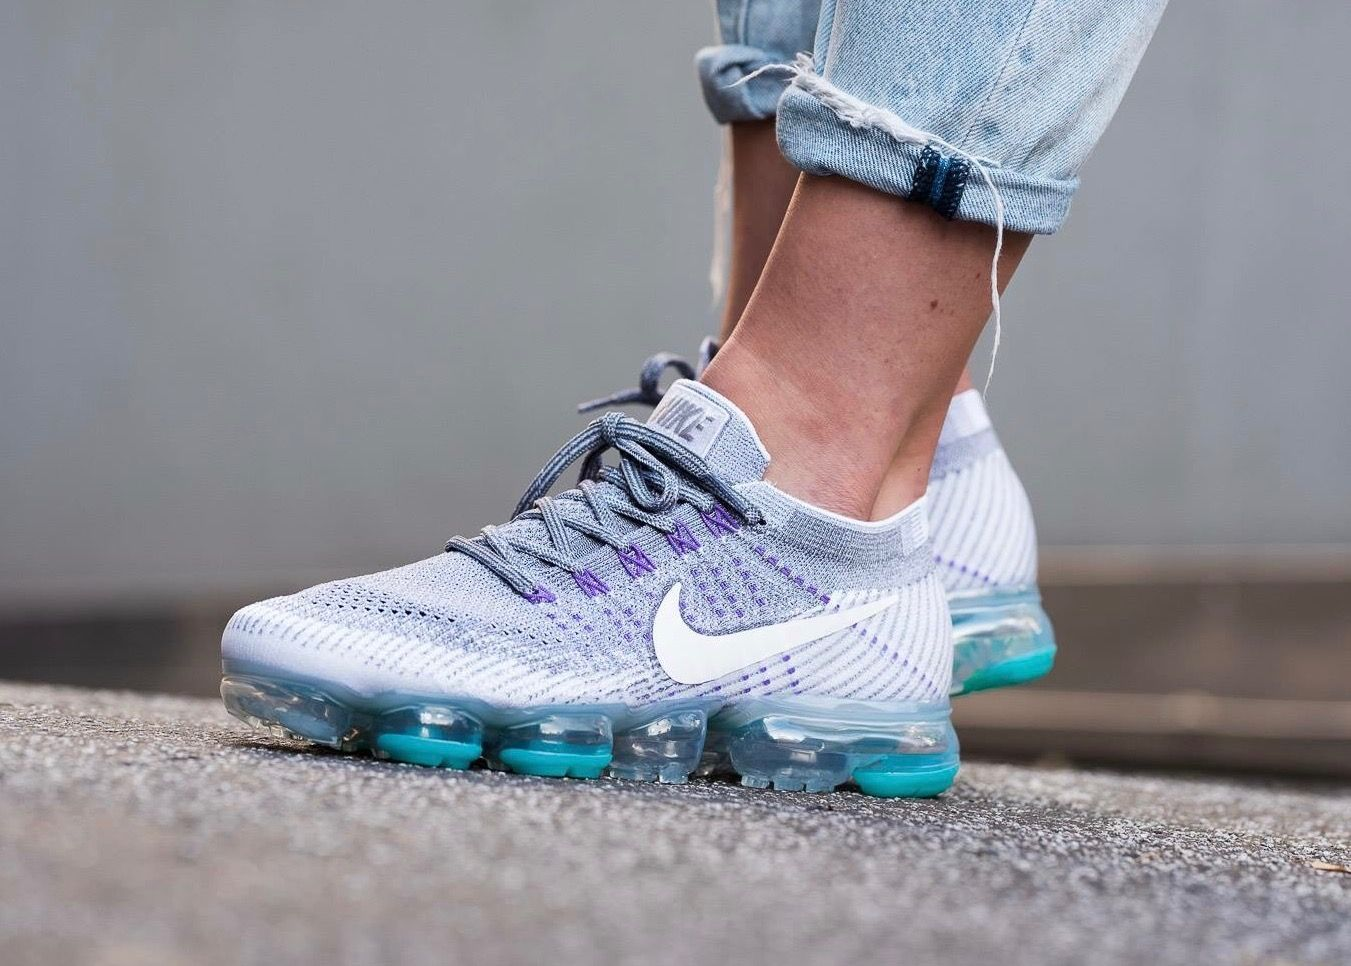 Nike Zapatillas Air Vapormax Flyknit Zapatillas Pinterest Zapatillas Nike 1c0458